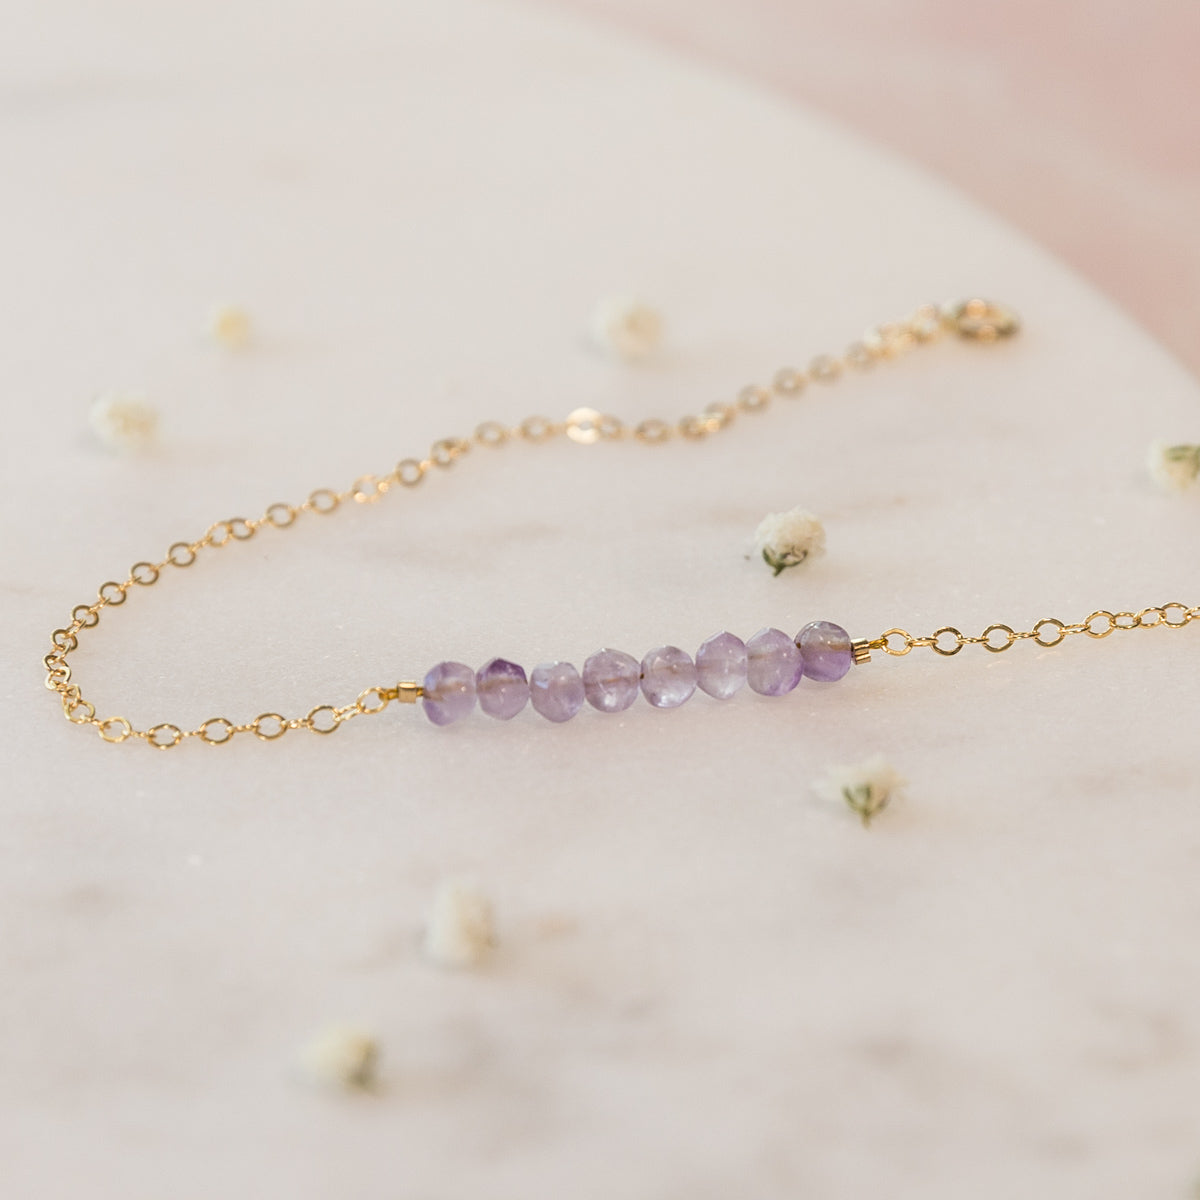 Amethyst Jewelry, Bridal Party Jewelry, Amethyst Necklace, Crystal Necklace, Healing Crystal Jewelry, February Birthstone Gift For Her, Dainty Celestial Necklace, Minimal Necklace, Bohemian, Gemstone Necklace, Crystal Necklace Liz.Beth Jewelry Co.